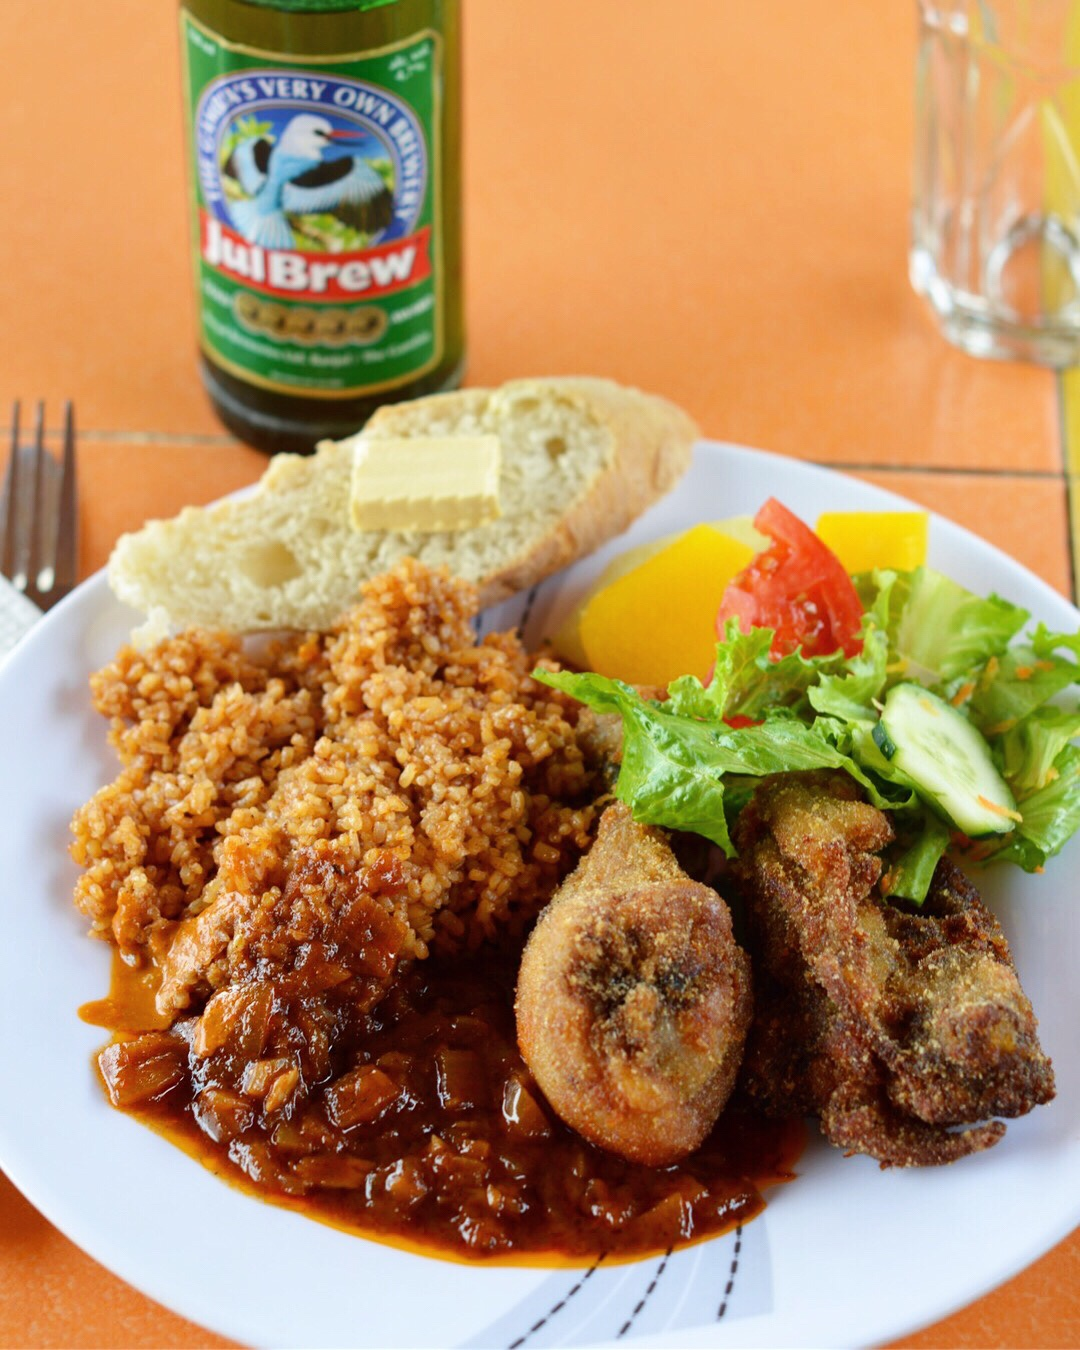 Restaurants senegambia strip foodetc cooks food recipes and travel what to eat and must try food in the gambia forumfinder Gallery